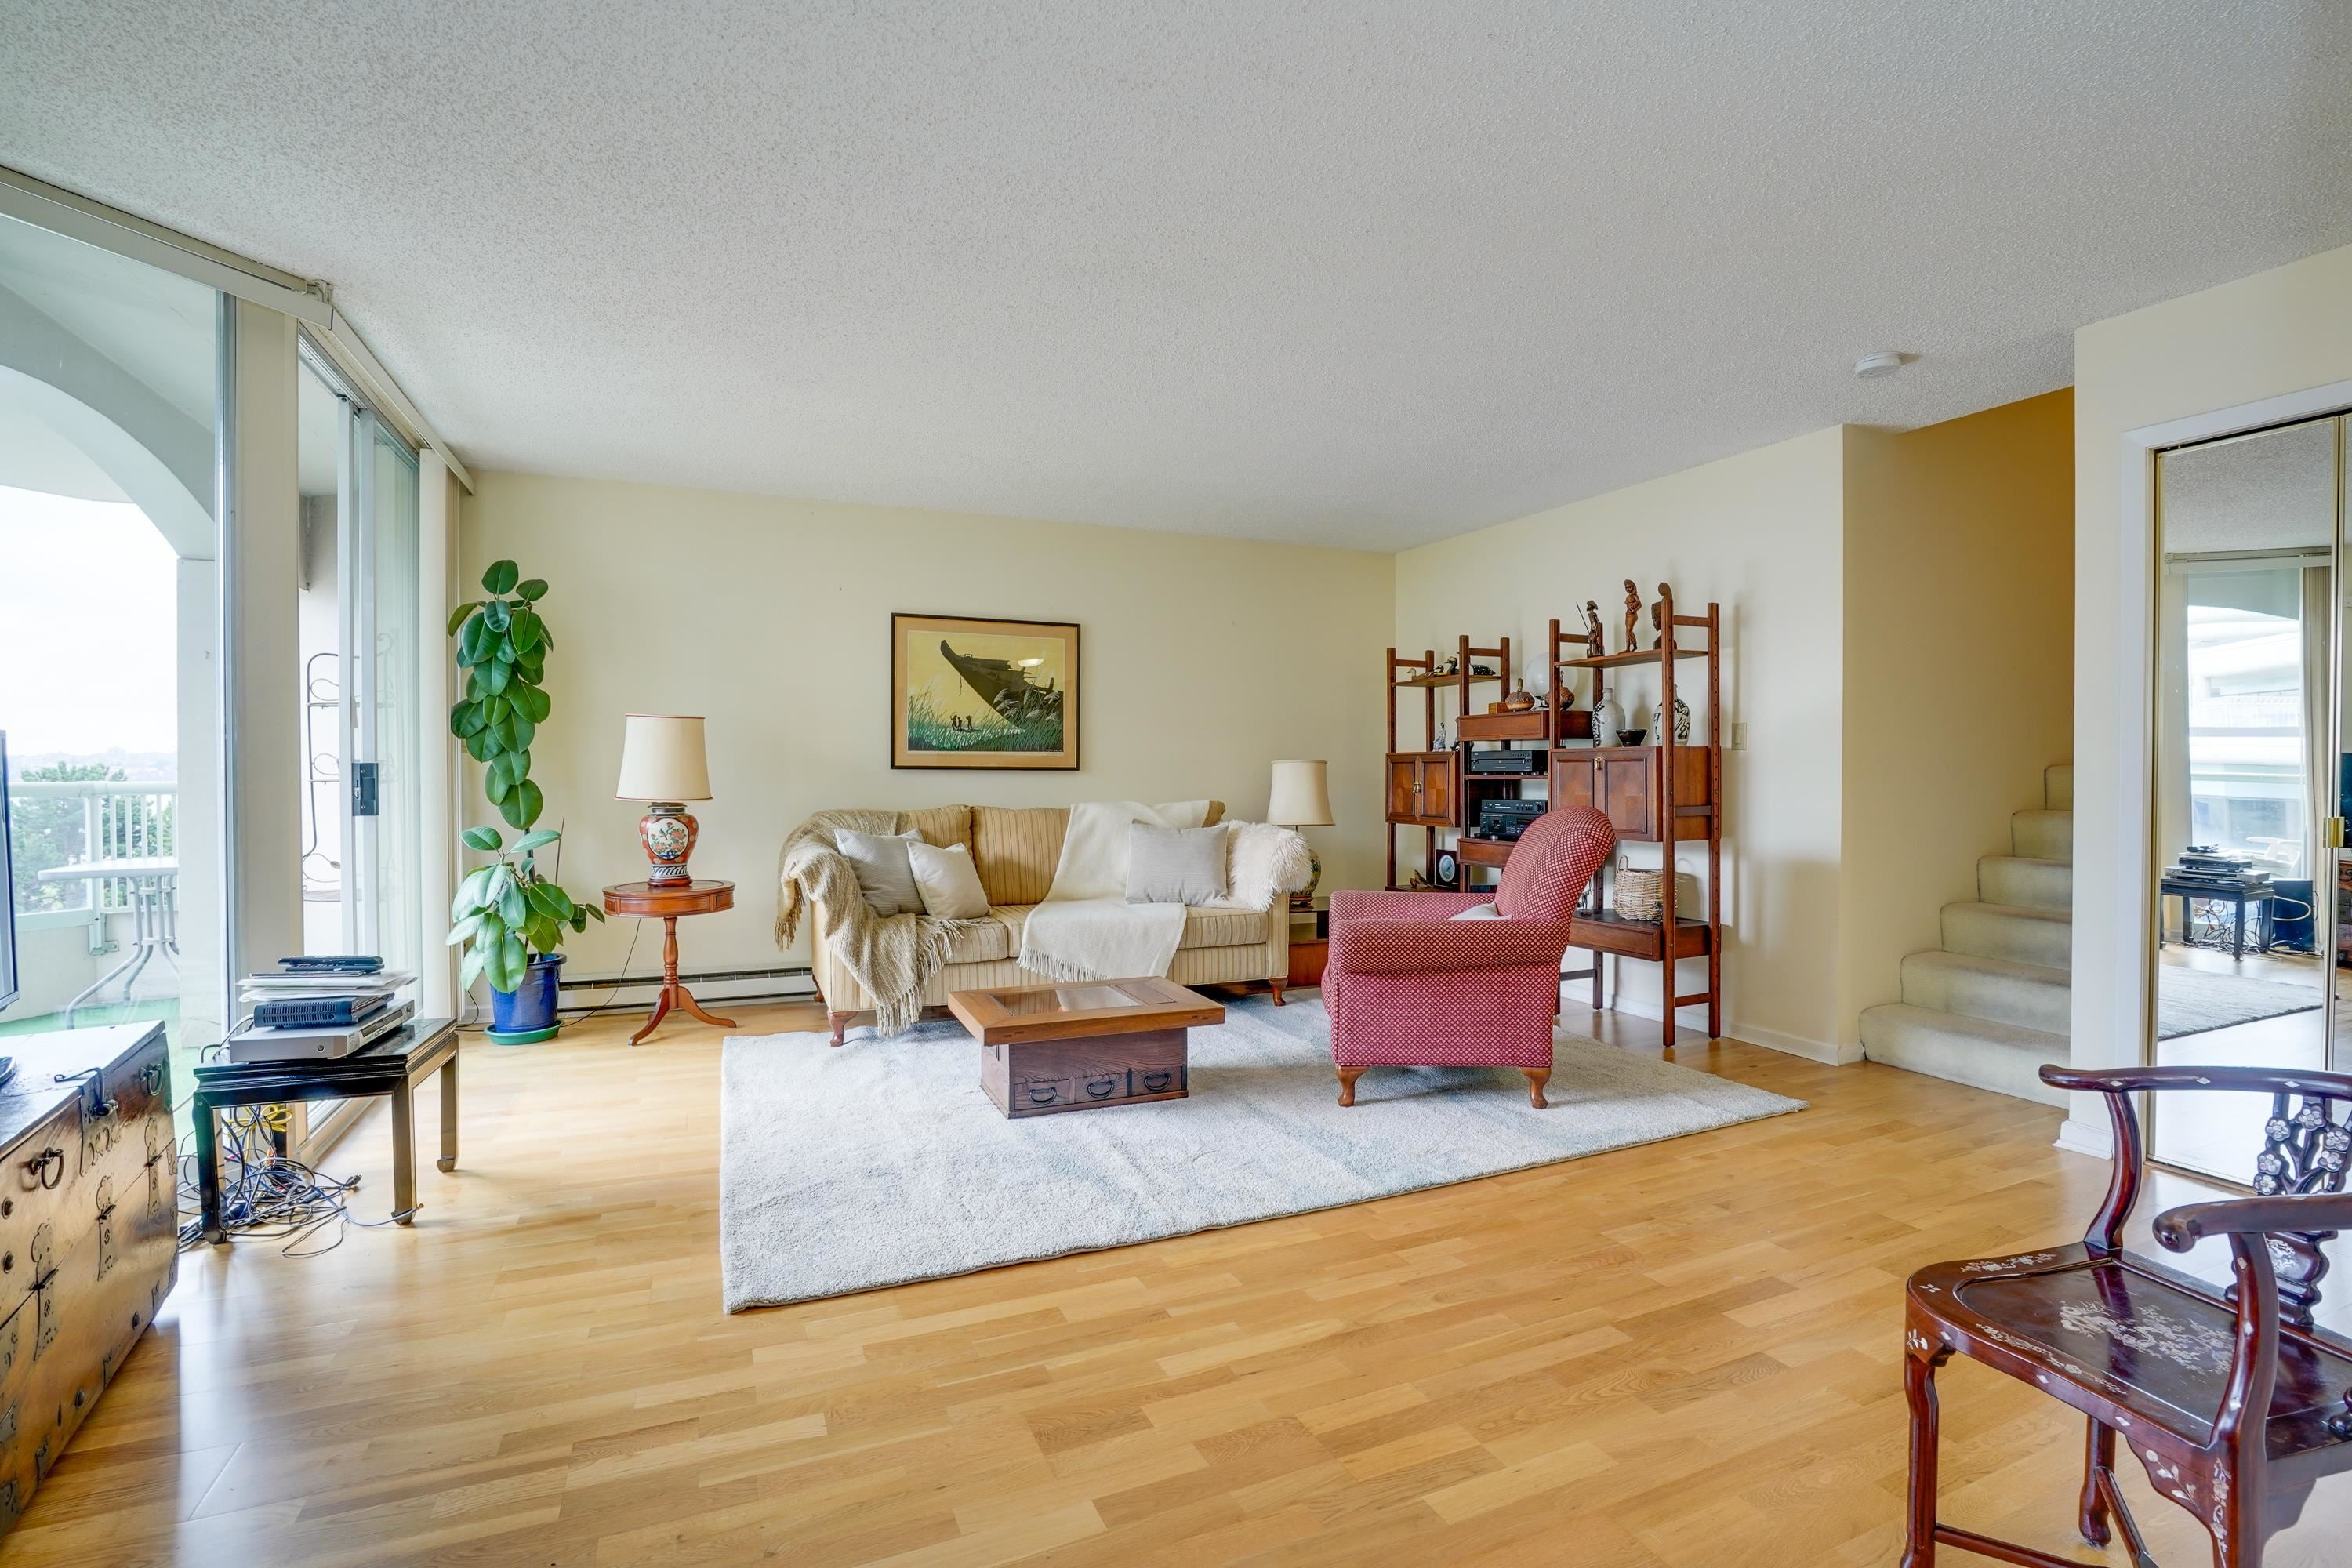 405 168 CHADWICK COURT - Lower Lonsdale Apartment/Condo for sale, 3 Bedrooms (R2619951) - #3